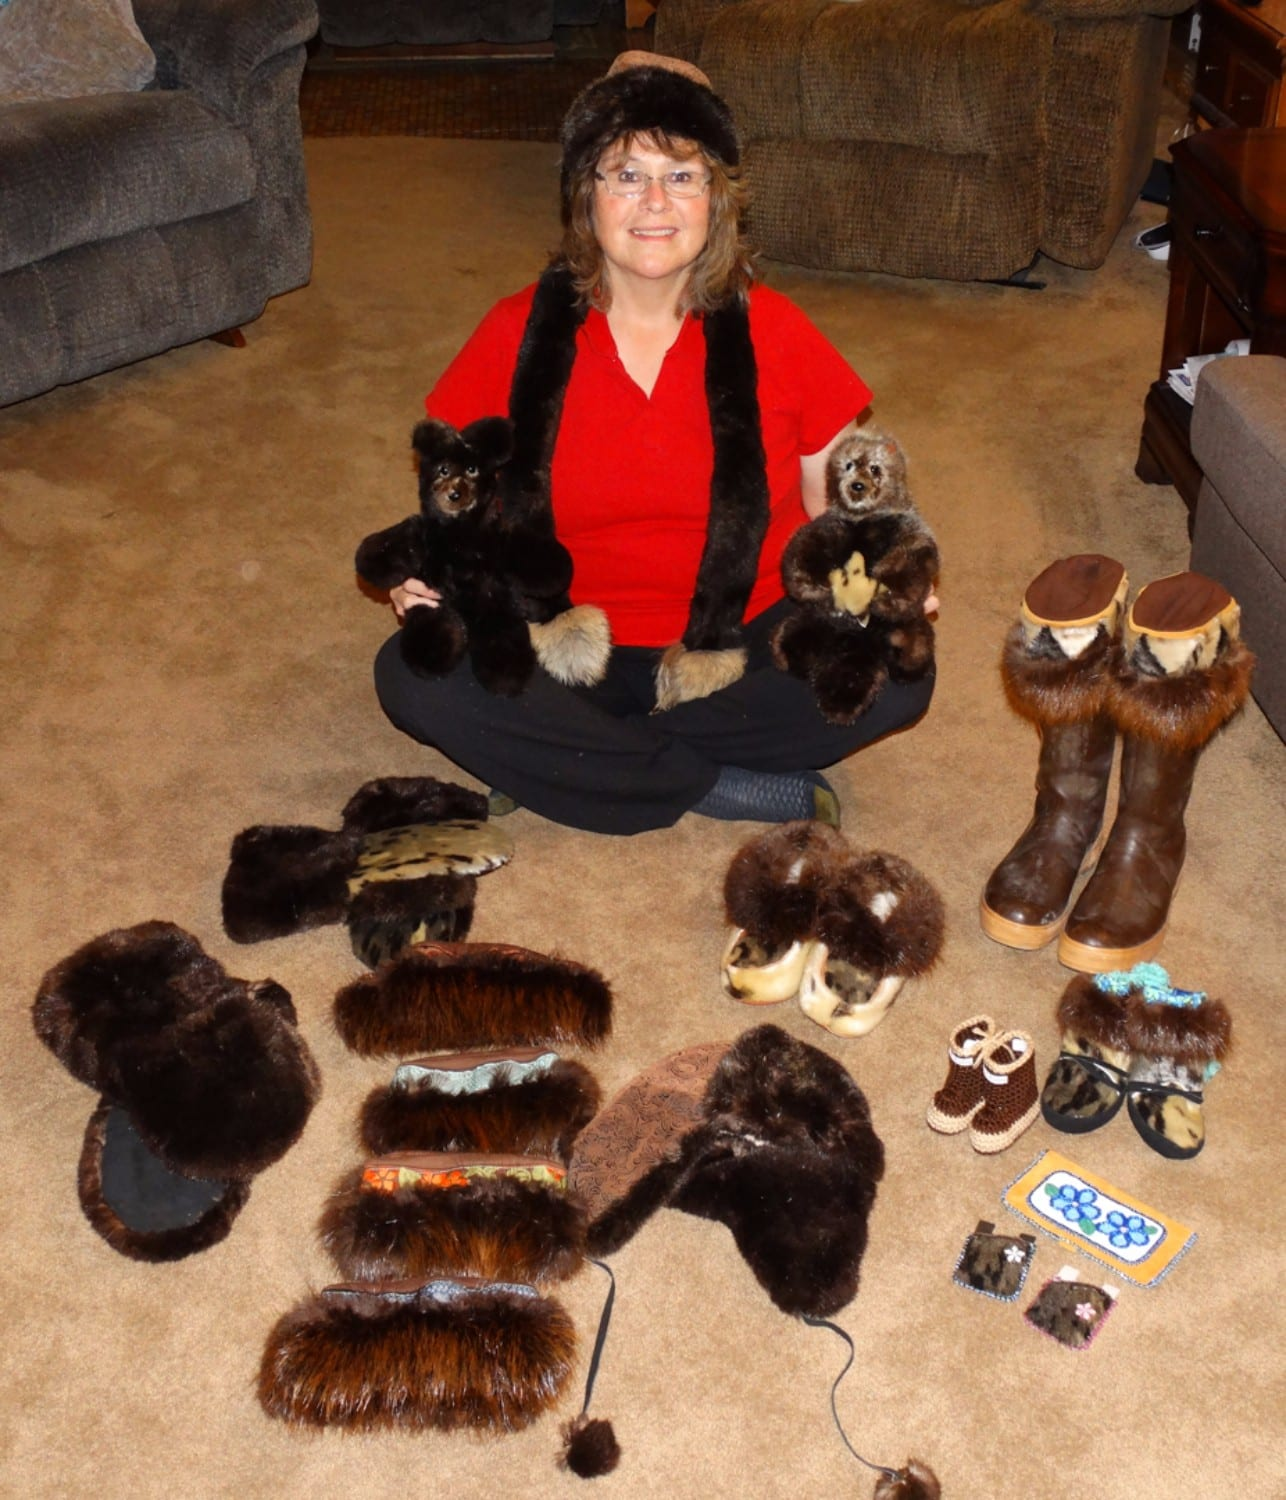 Alaska Native handicraft artist Gloria Cunningham makes gloves, hats, mittens, teddy bears, sea otters, slippers, boot toppers, baby booties and more, from locally sourced Alaskan furbearing animals, and embellishes many of her creations with beadwork. Photo courtesy Gloria Cunningham/For The Cordova Times